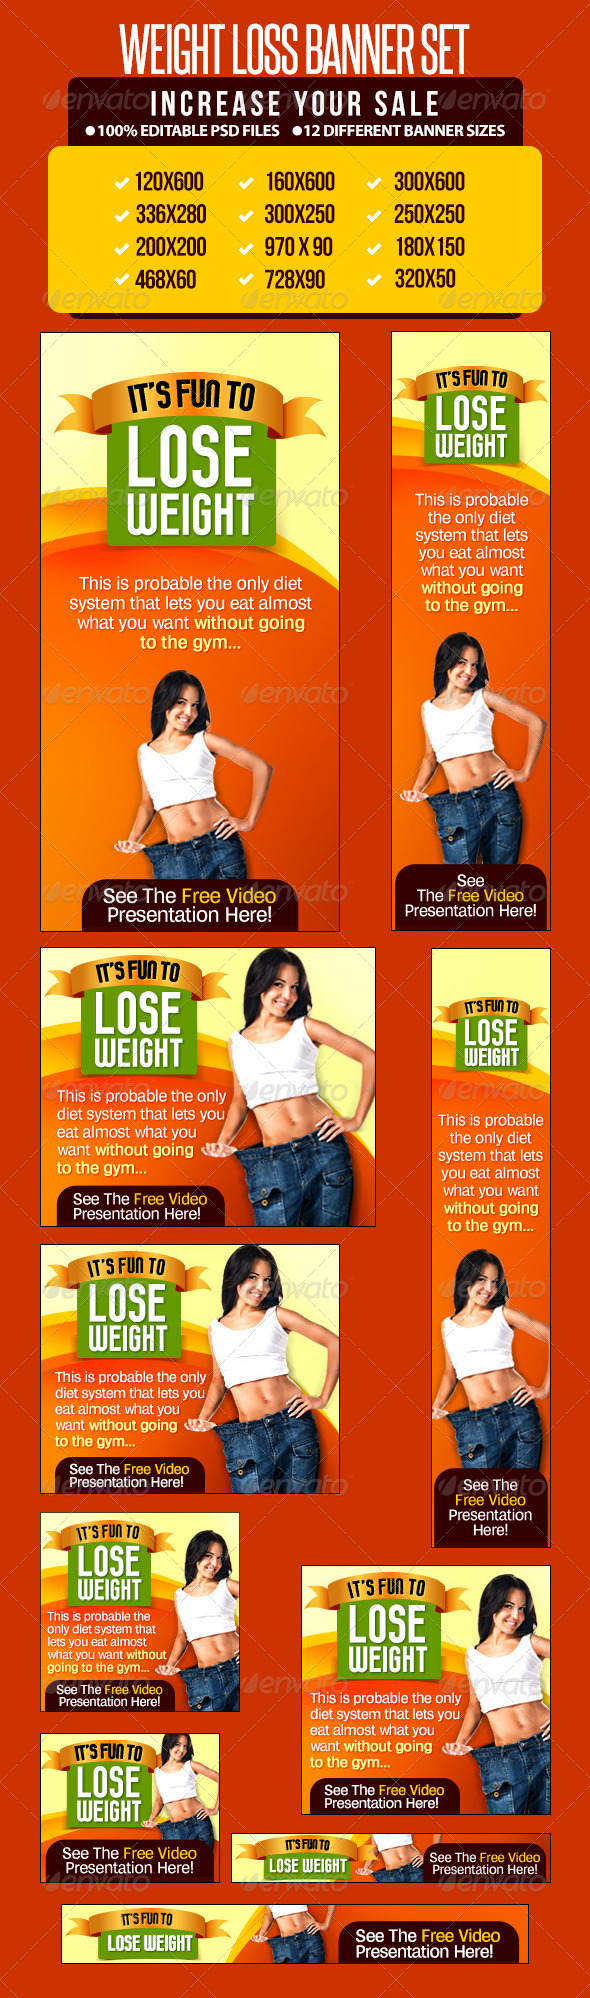 Weight Loss Banner Set - Banners & Ads Web Elements